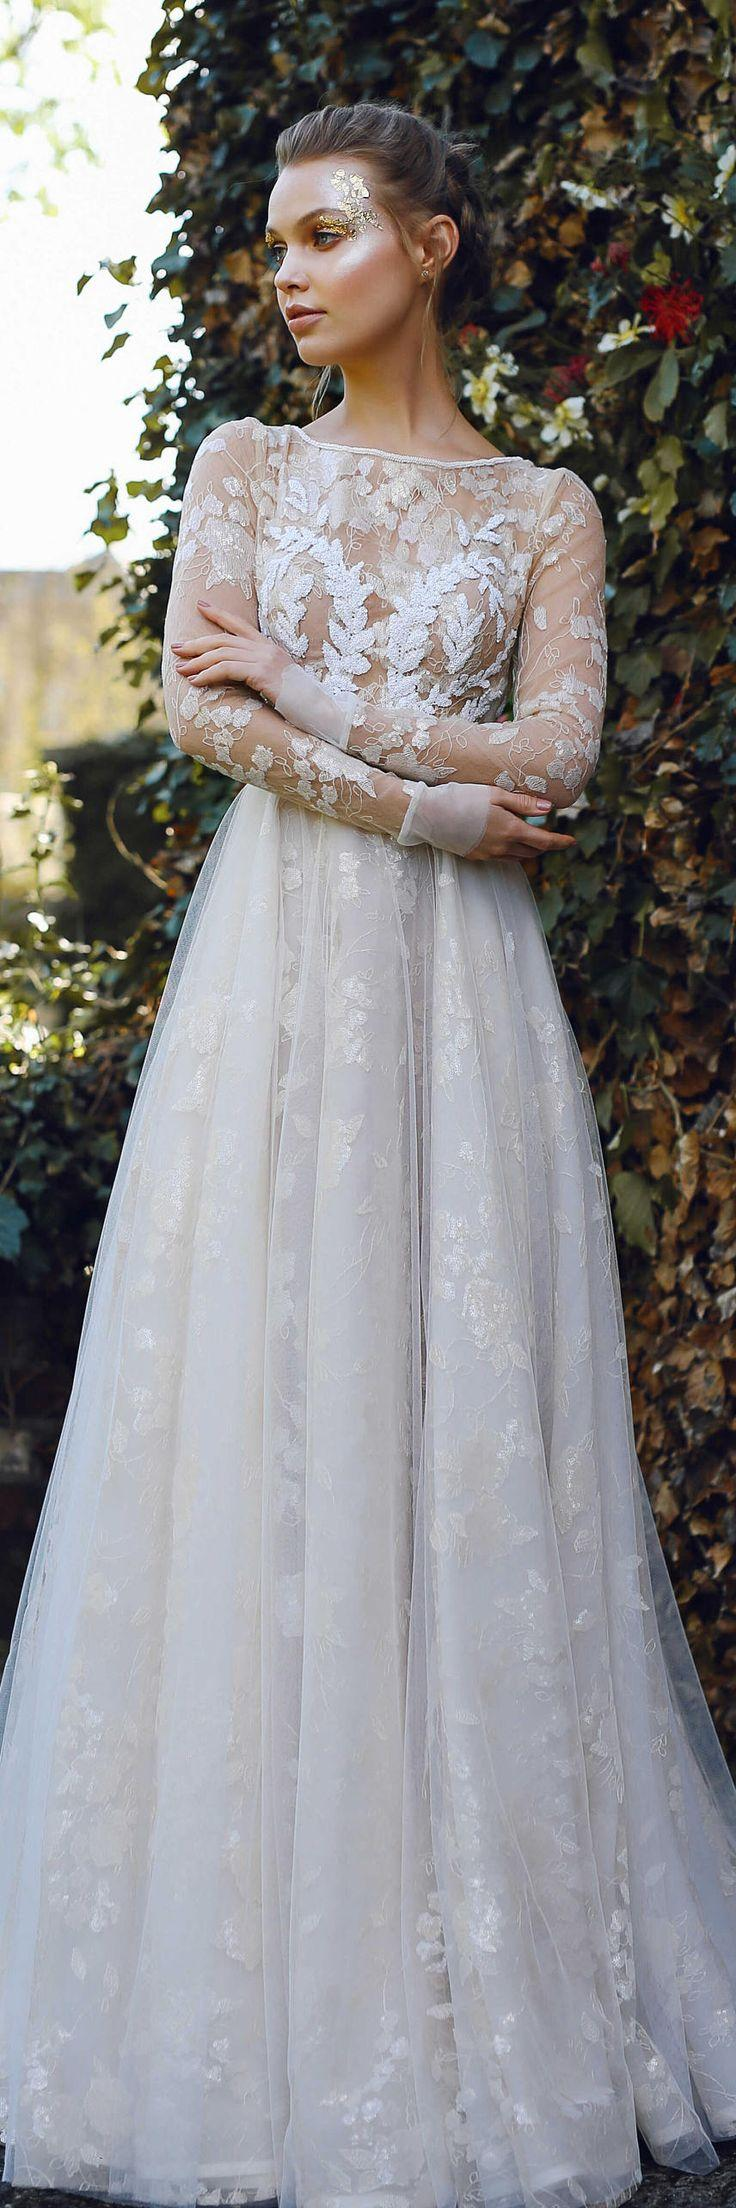 زفاف - Wedding Dress ILAYN, Couture Wedding Dress, Long Sleeved Wedding Dress, Milk